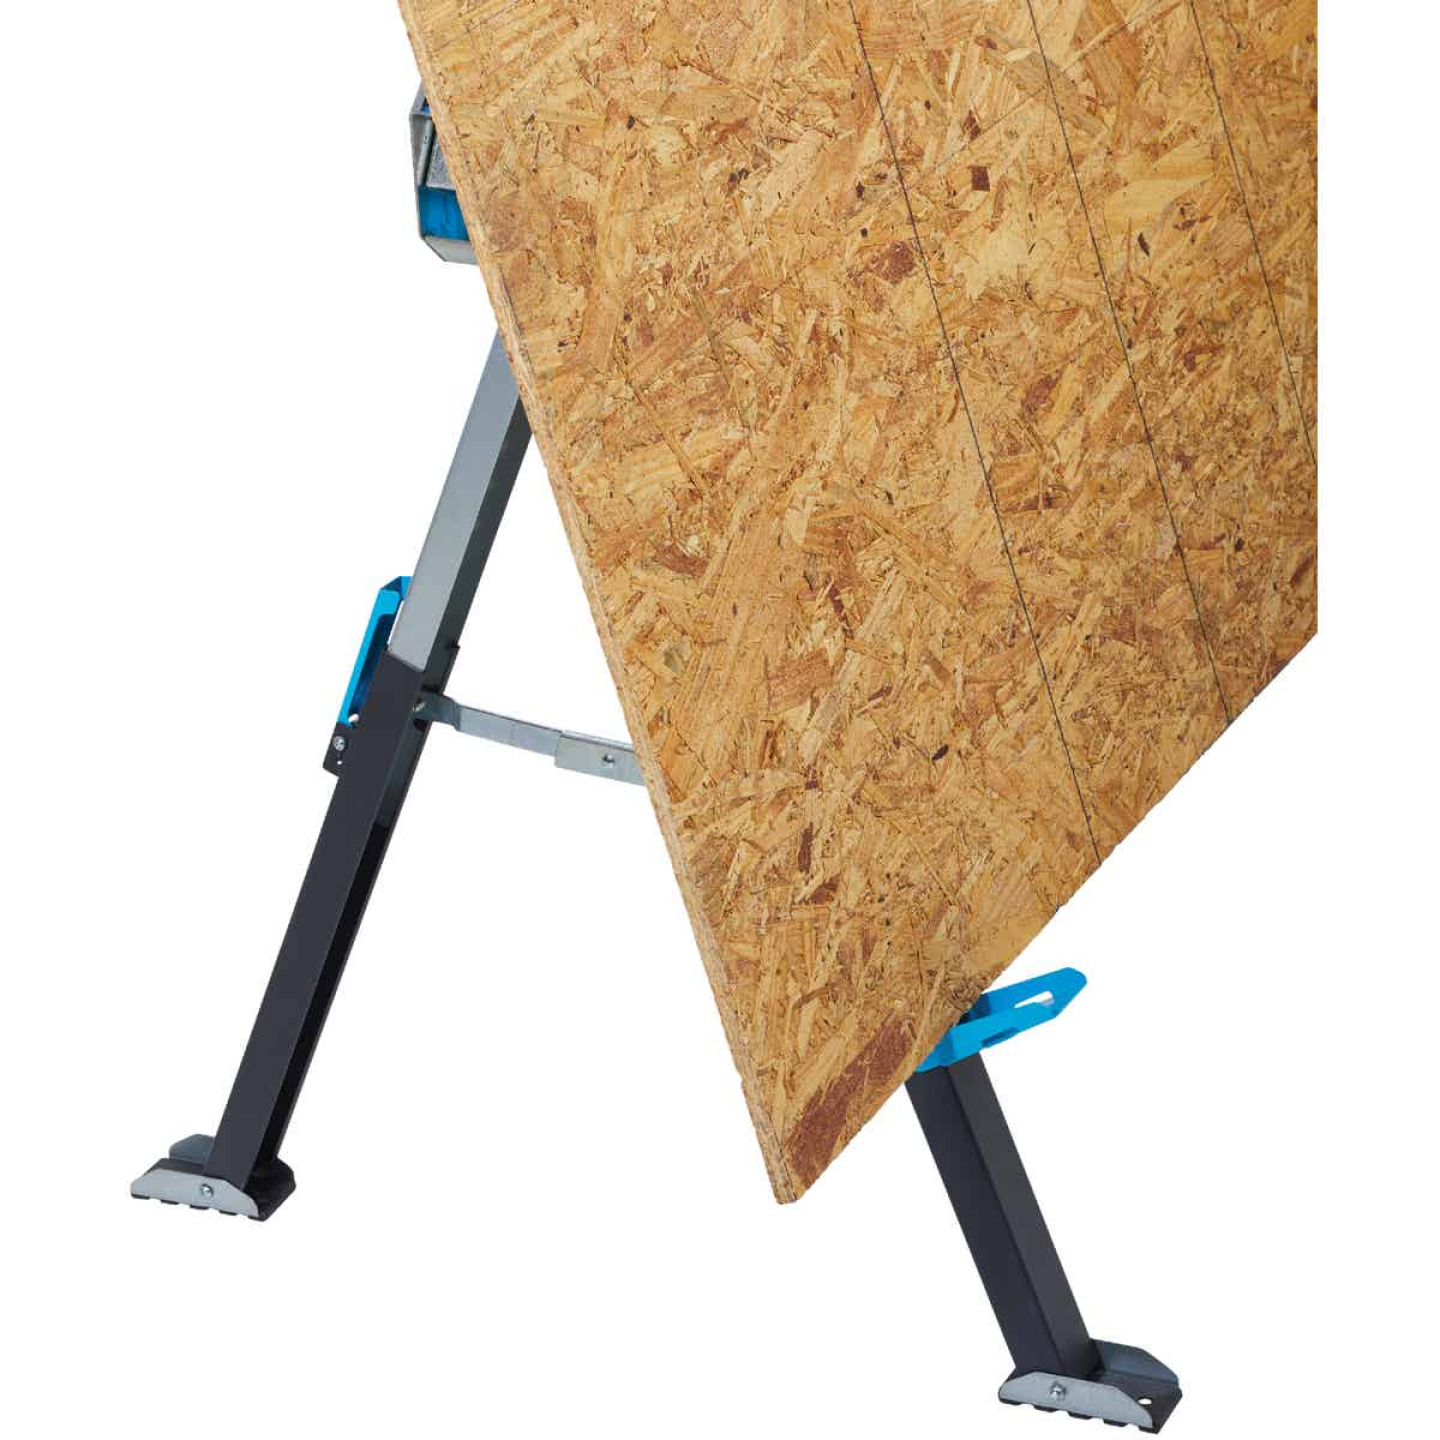 Channellock 39-1/4 to 45-3/4 In. Long Steel Adjustable Sawhorse Jobsite Table, 1300 Lb. Capacity Image 9